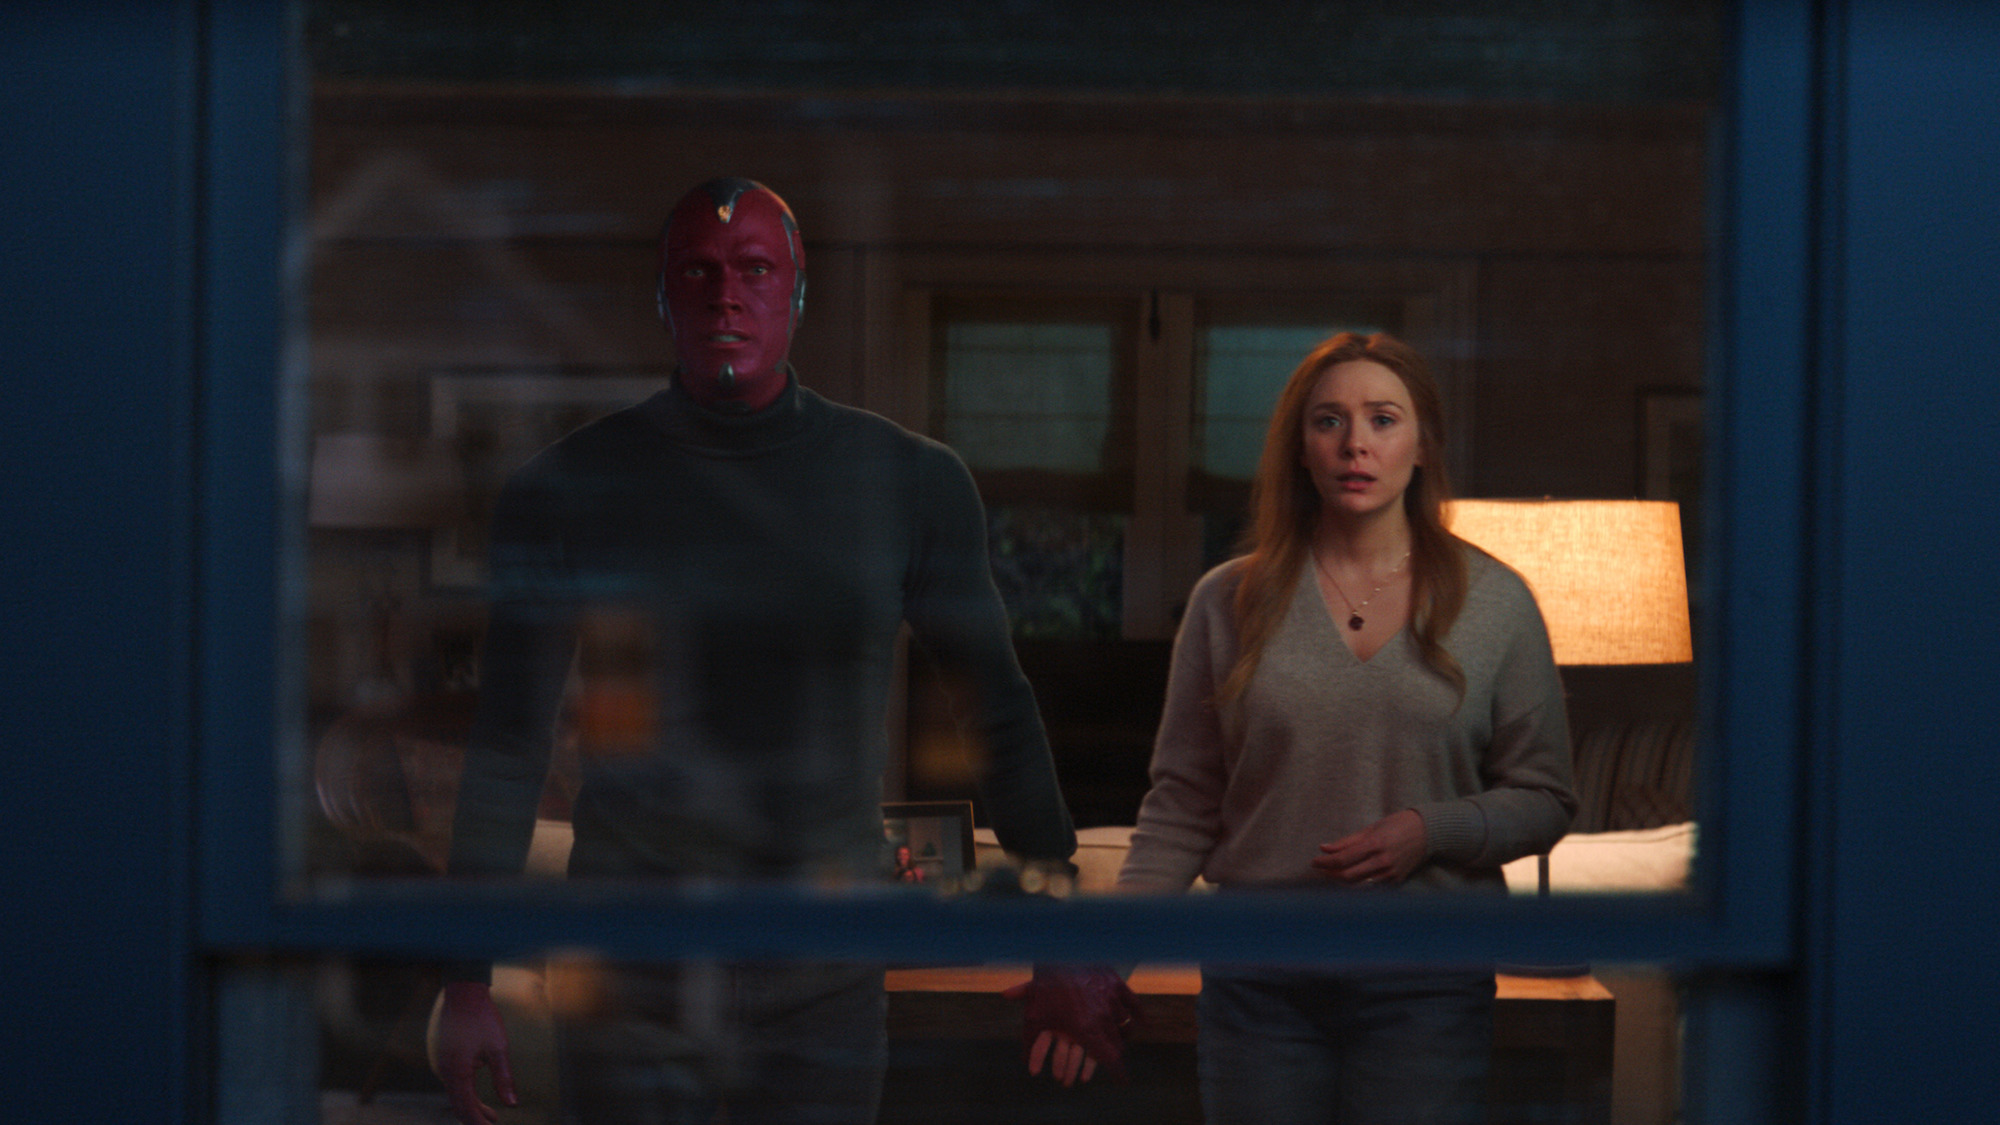 Vision (Paul Bettany) and Wanda Maximoff (Elizabeth Olsen) in the finale of 'WandaVision'